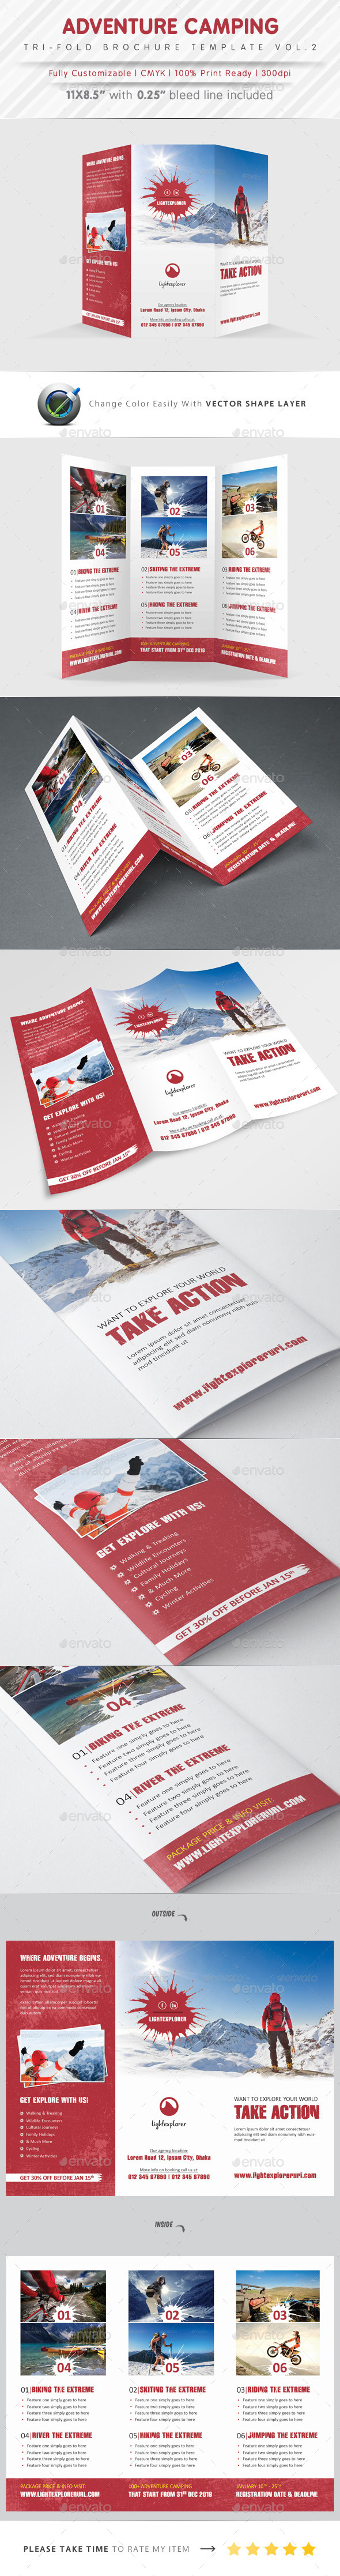 GraphicRiver Adventure Camping Tri Fold Vol.2 9916540